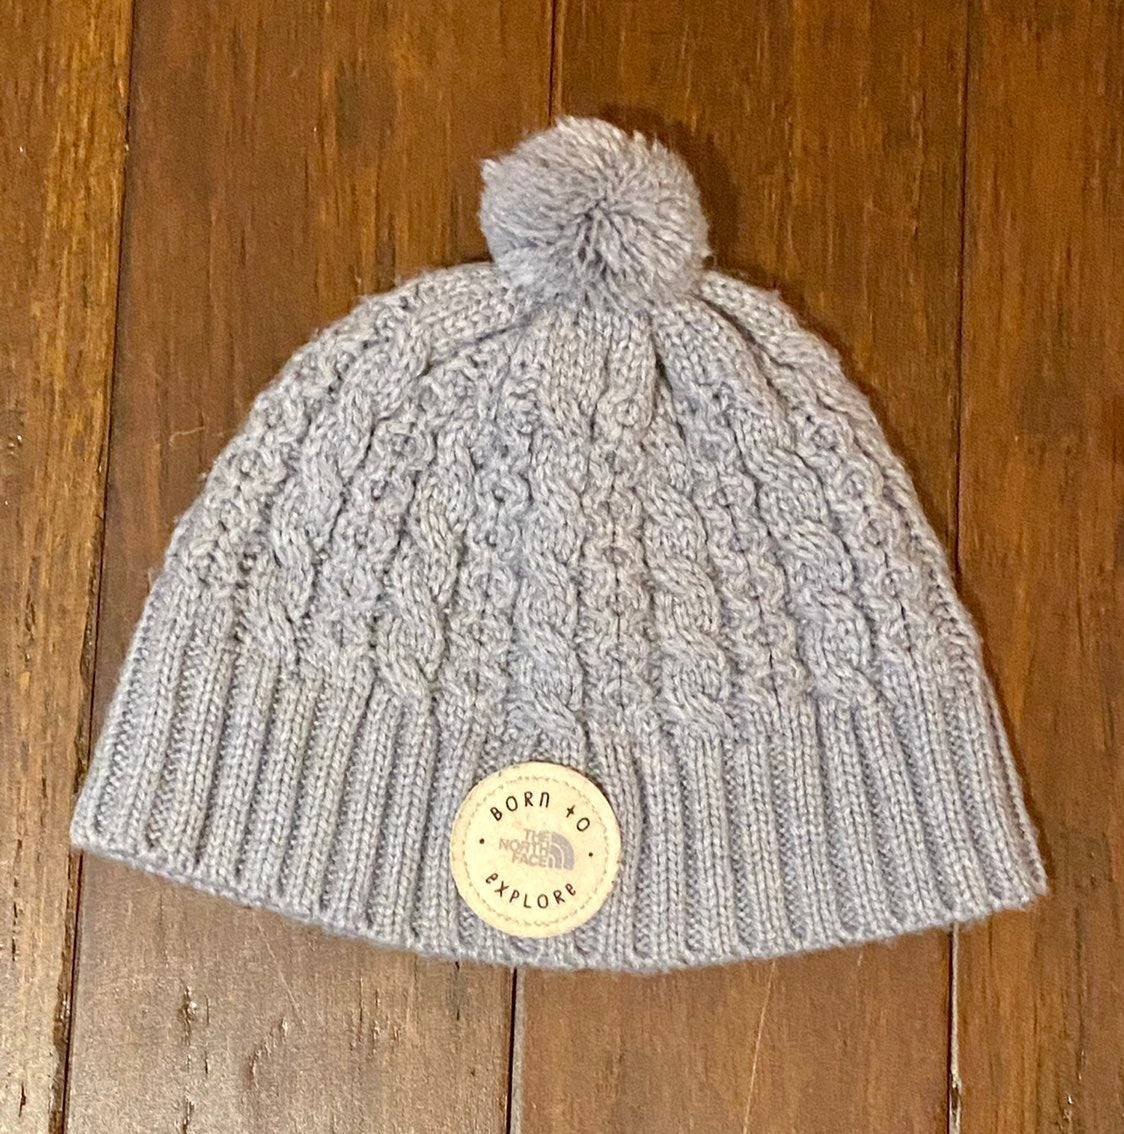 The North Face Beenie hat